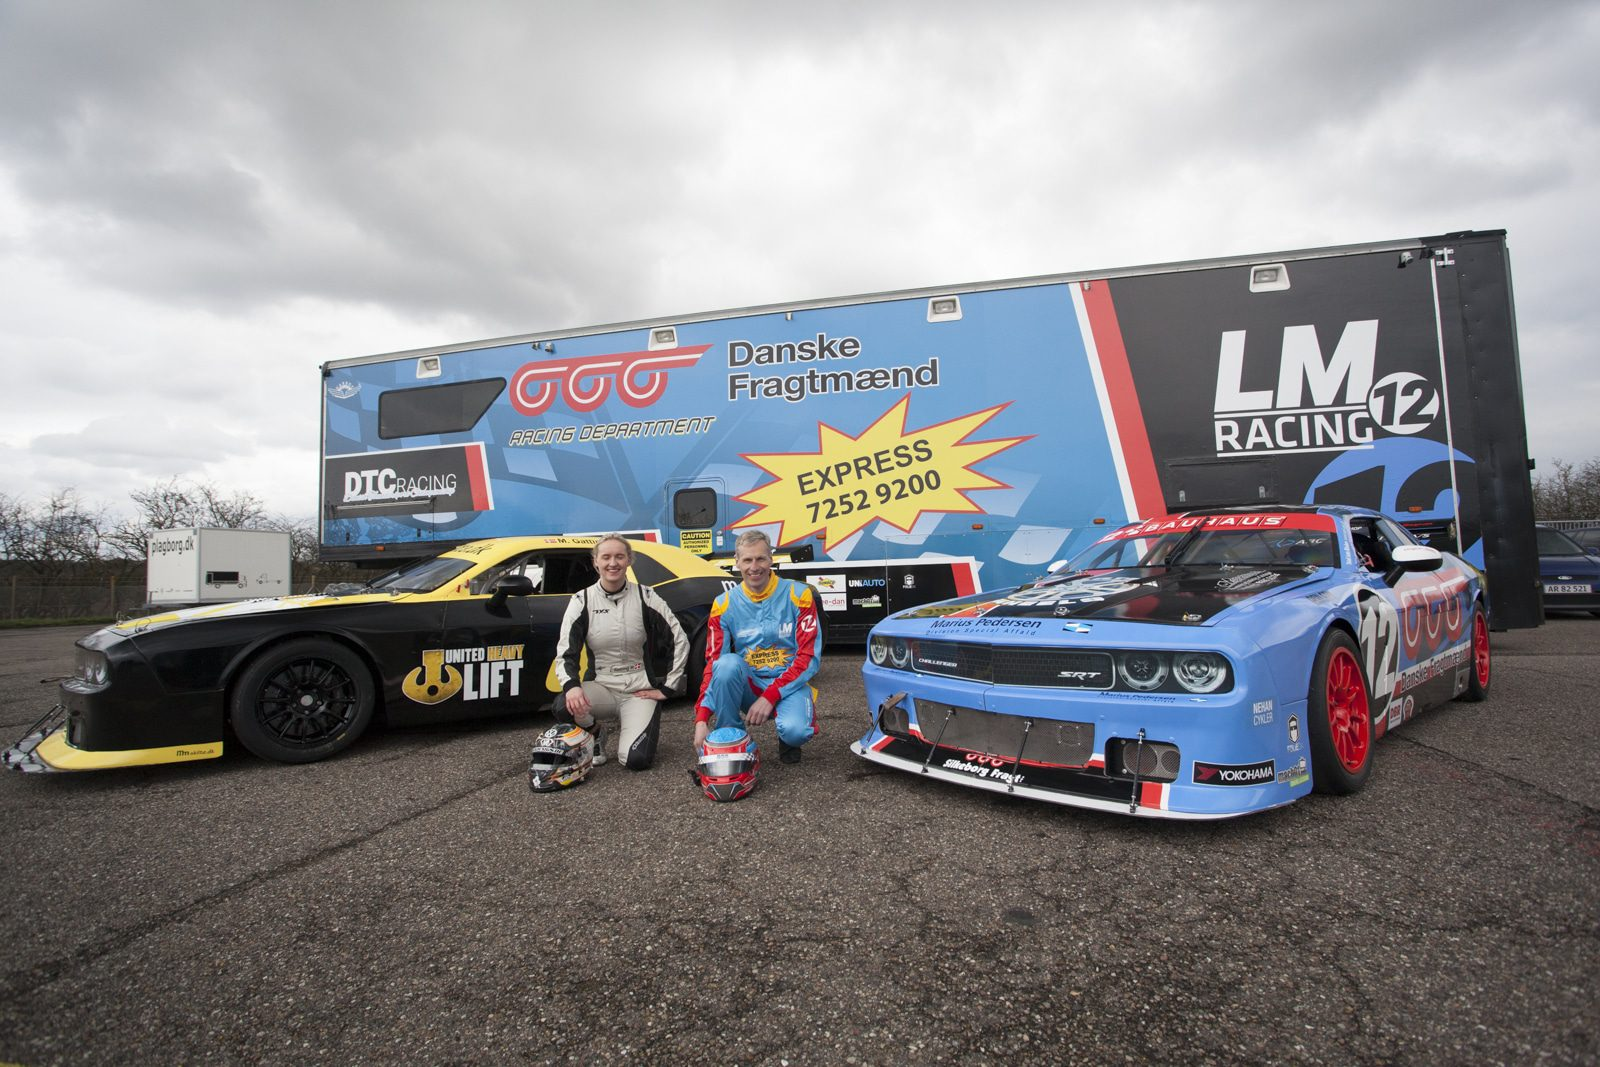 LM Racing 2016 - Foto: LM Racing